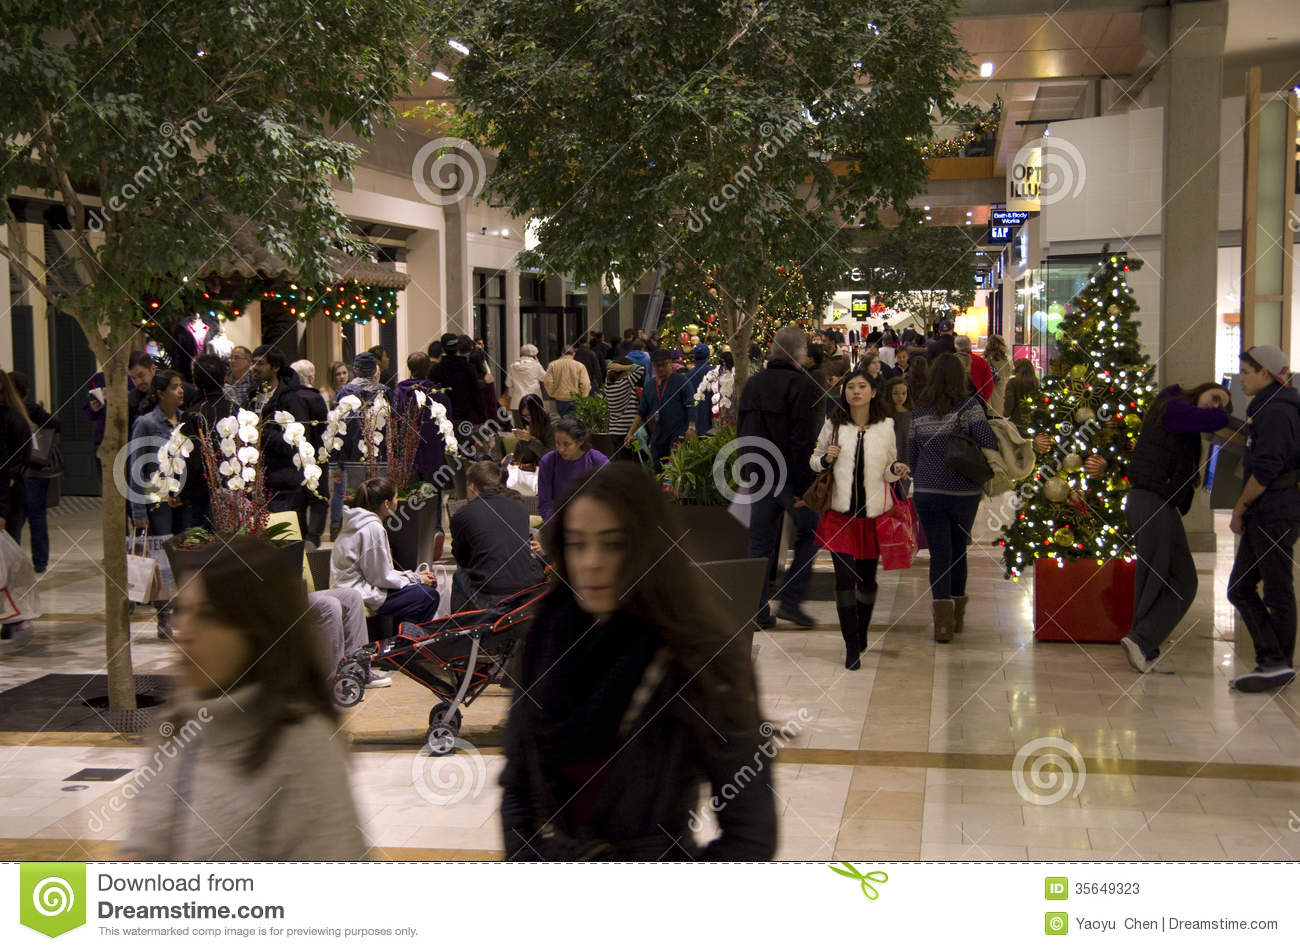 BELLEVUE, WA - Set your alarm clocks. Many shopping malls around Puget sound will have special hours on Thanksgiving and Black Friday. Some malls will open Thanksgiving night, while others will.